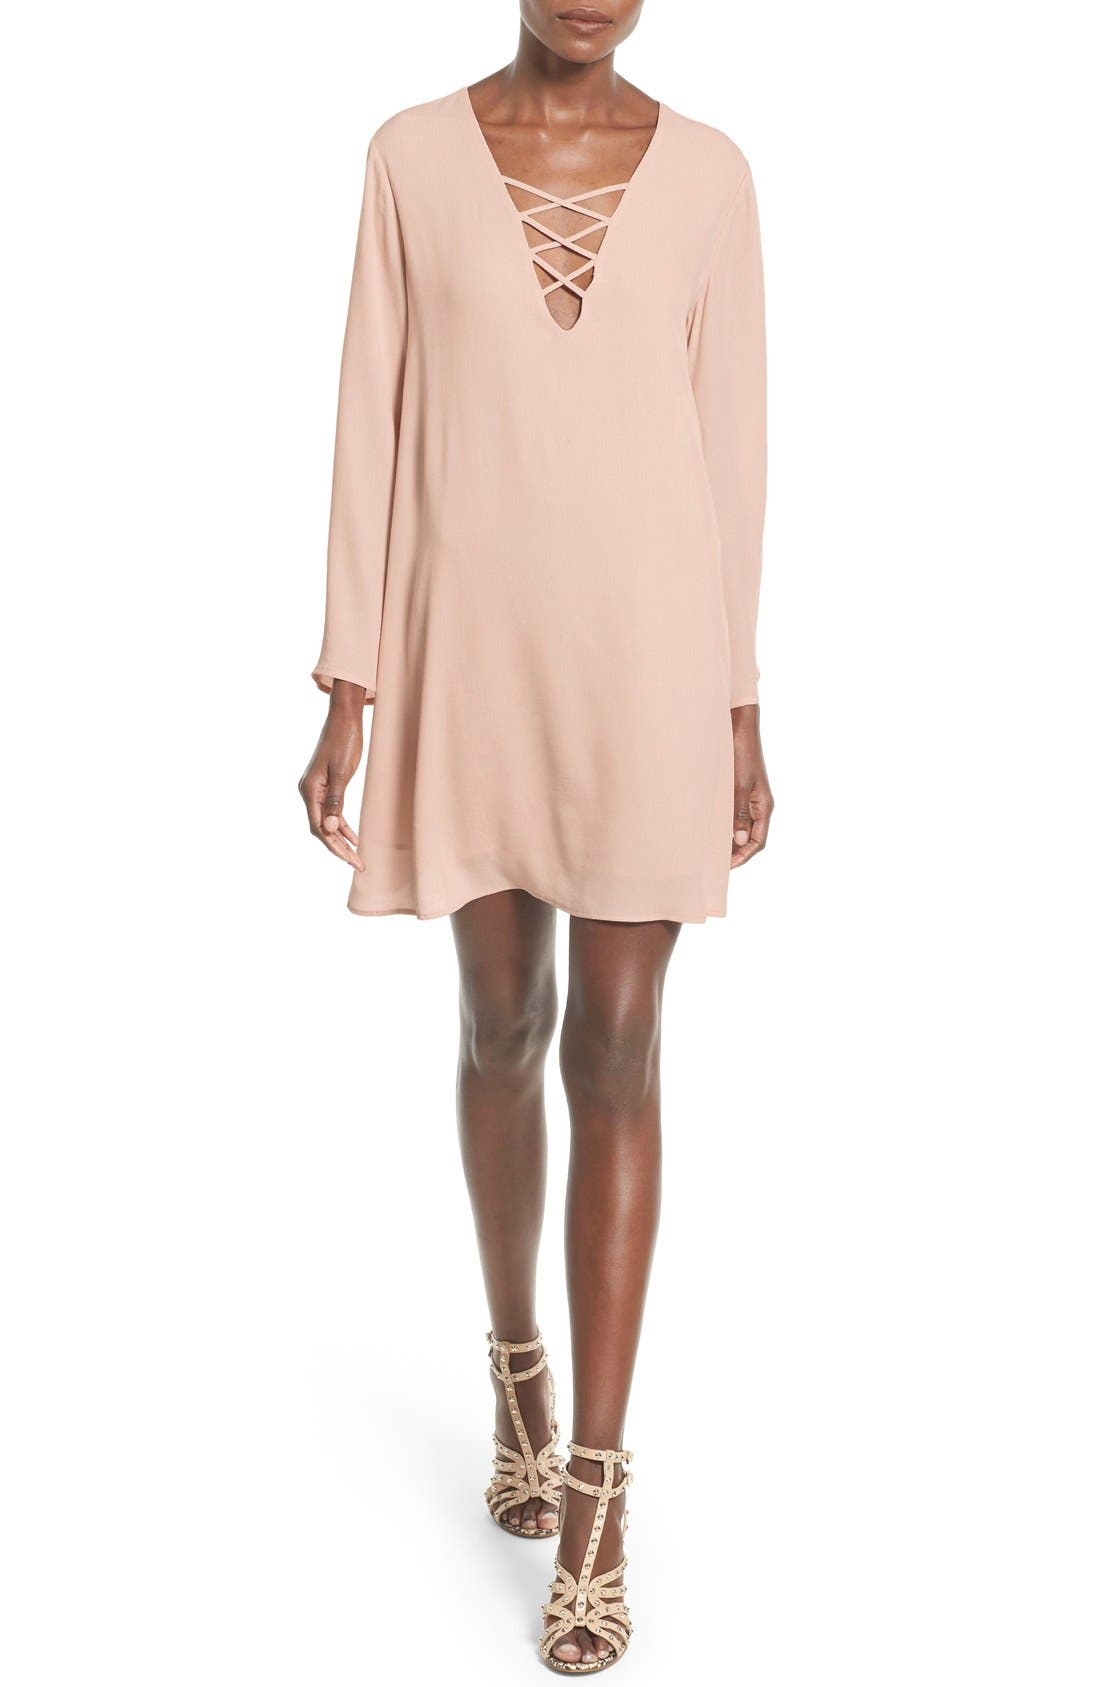 Main Image - ASTR Lace-Up Bell Sleeve Shift Dress